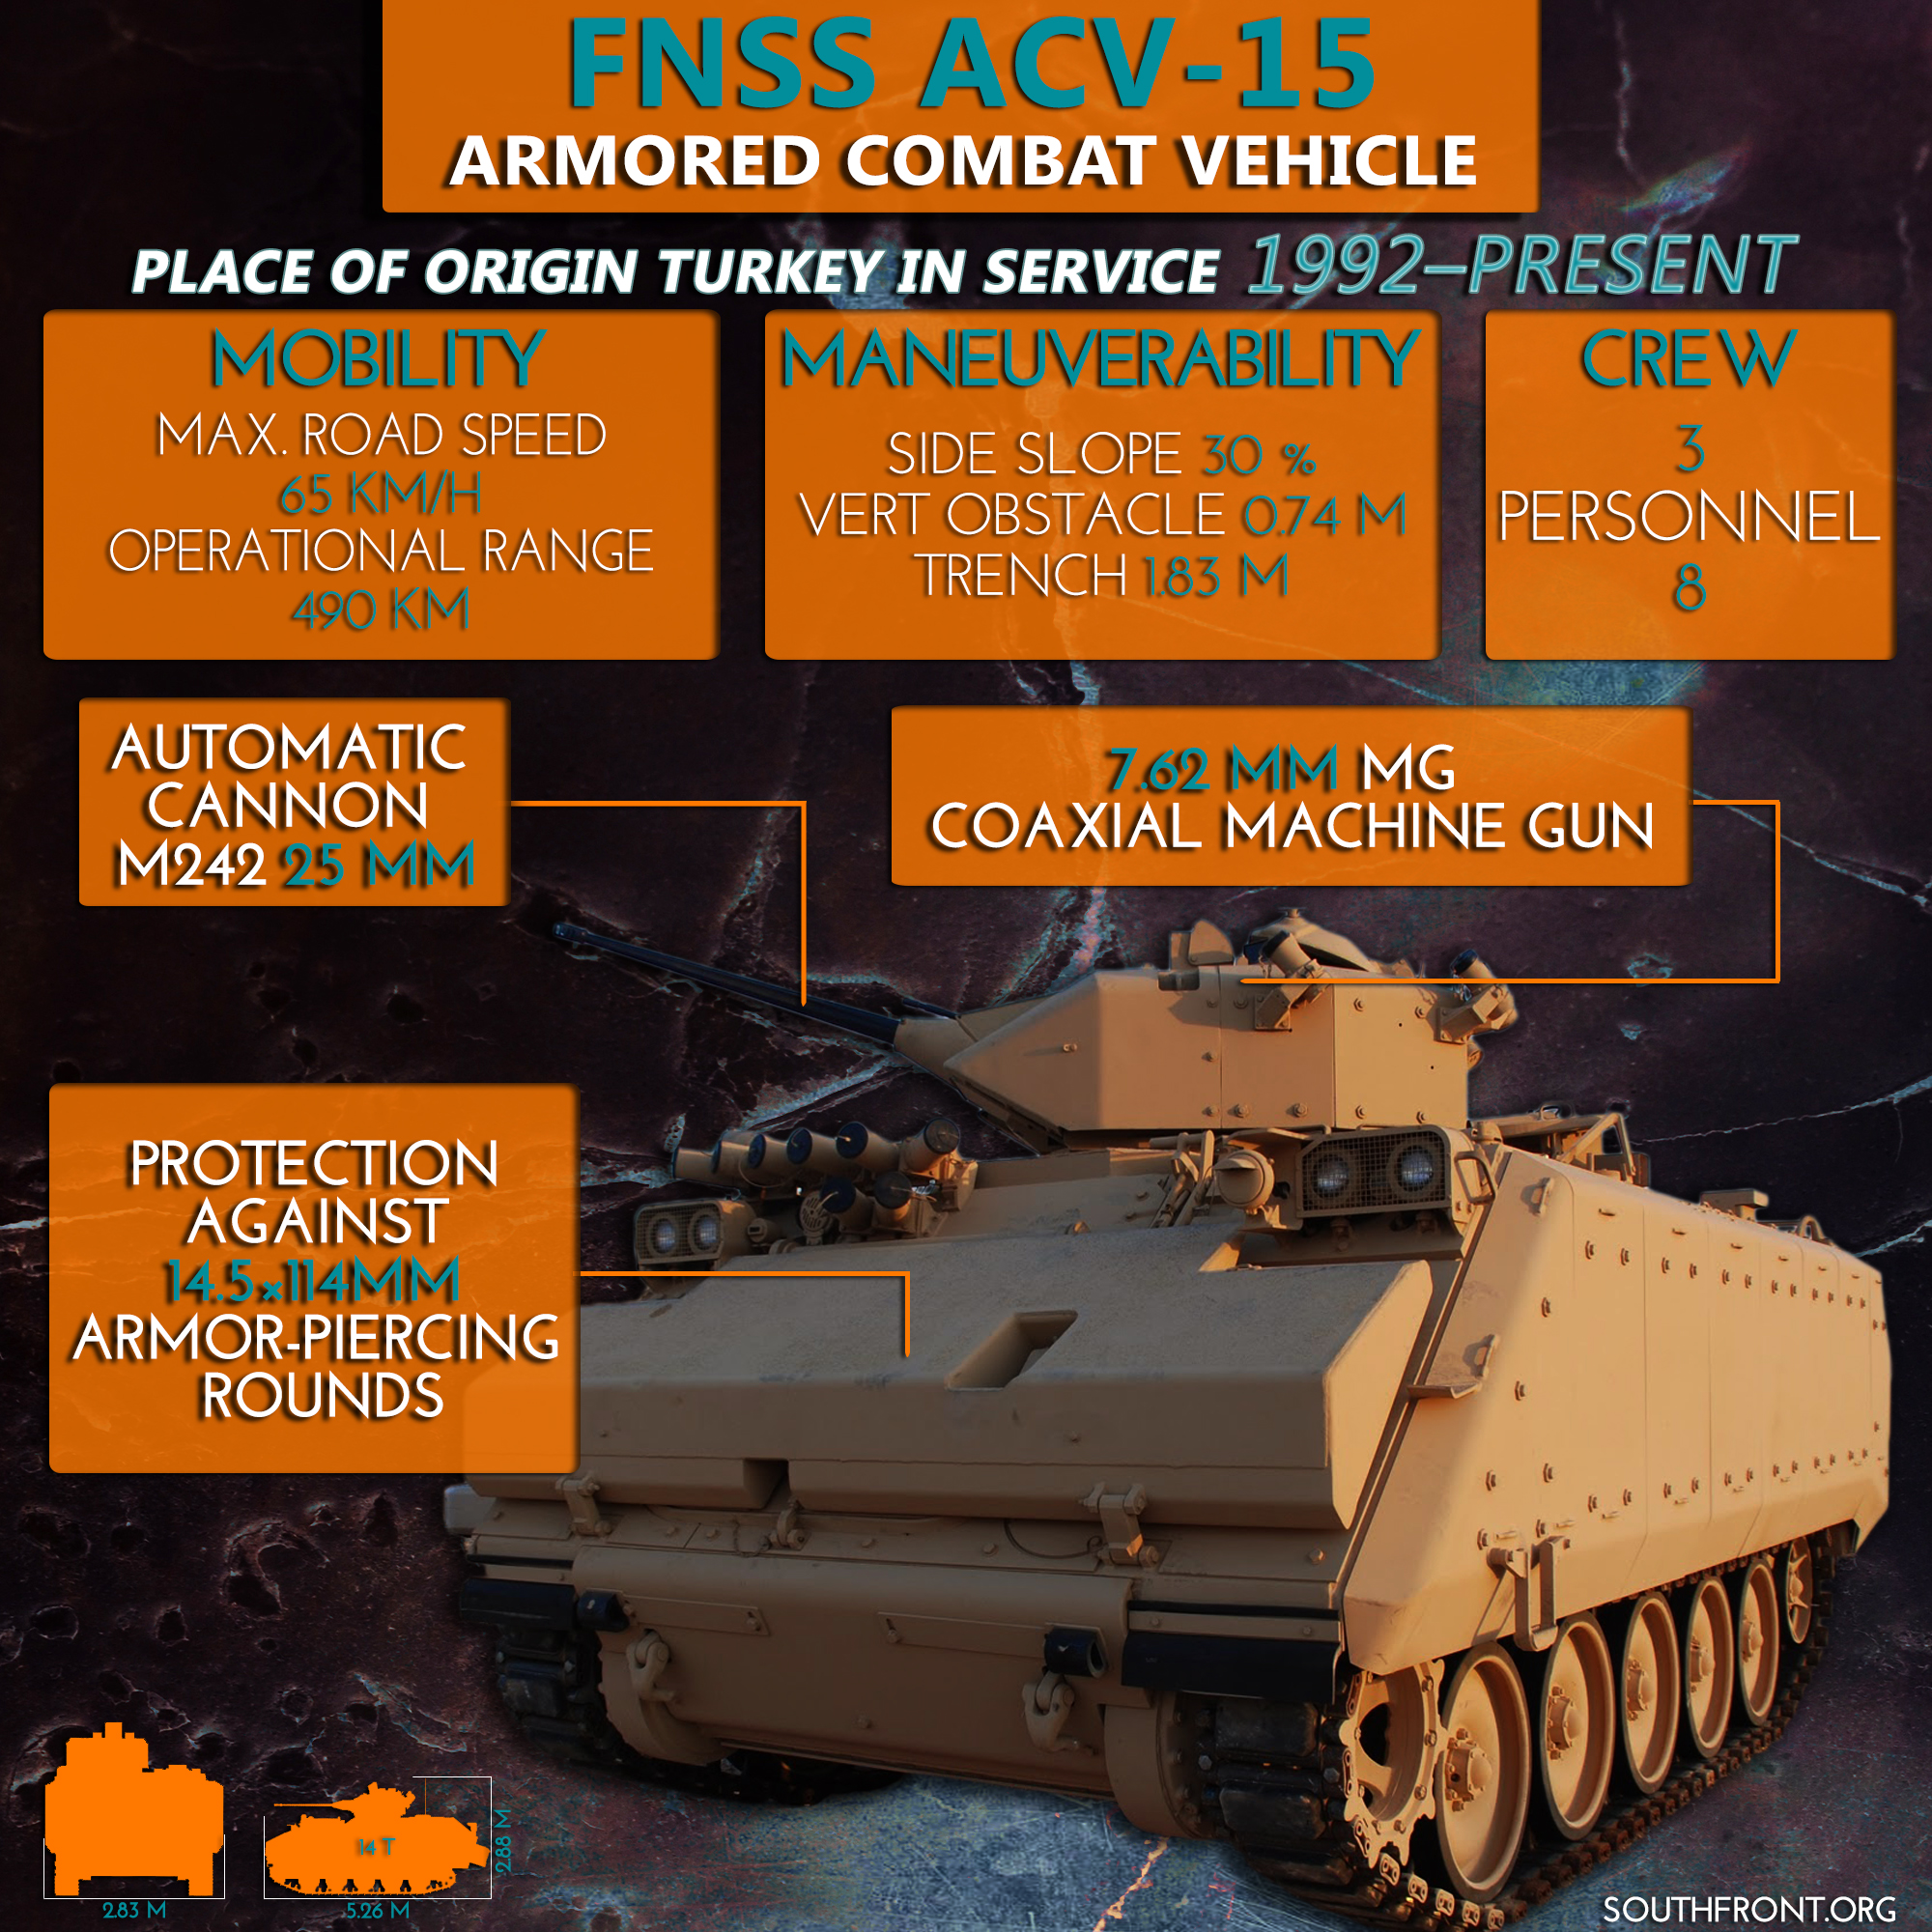 Turkey Supplies ACV-15 Armored Combat Vehicles to Militants in Syria (Infographics, Video)